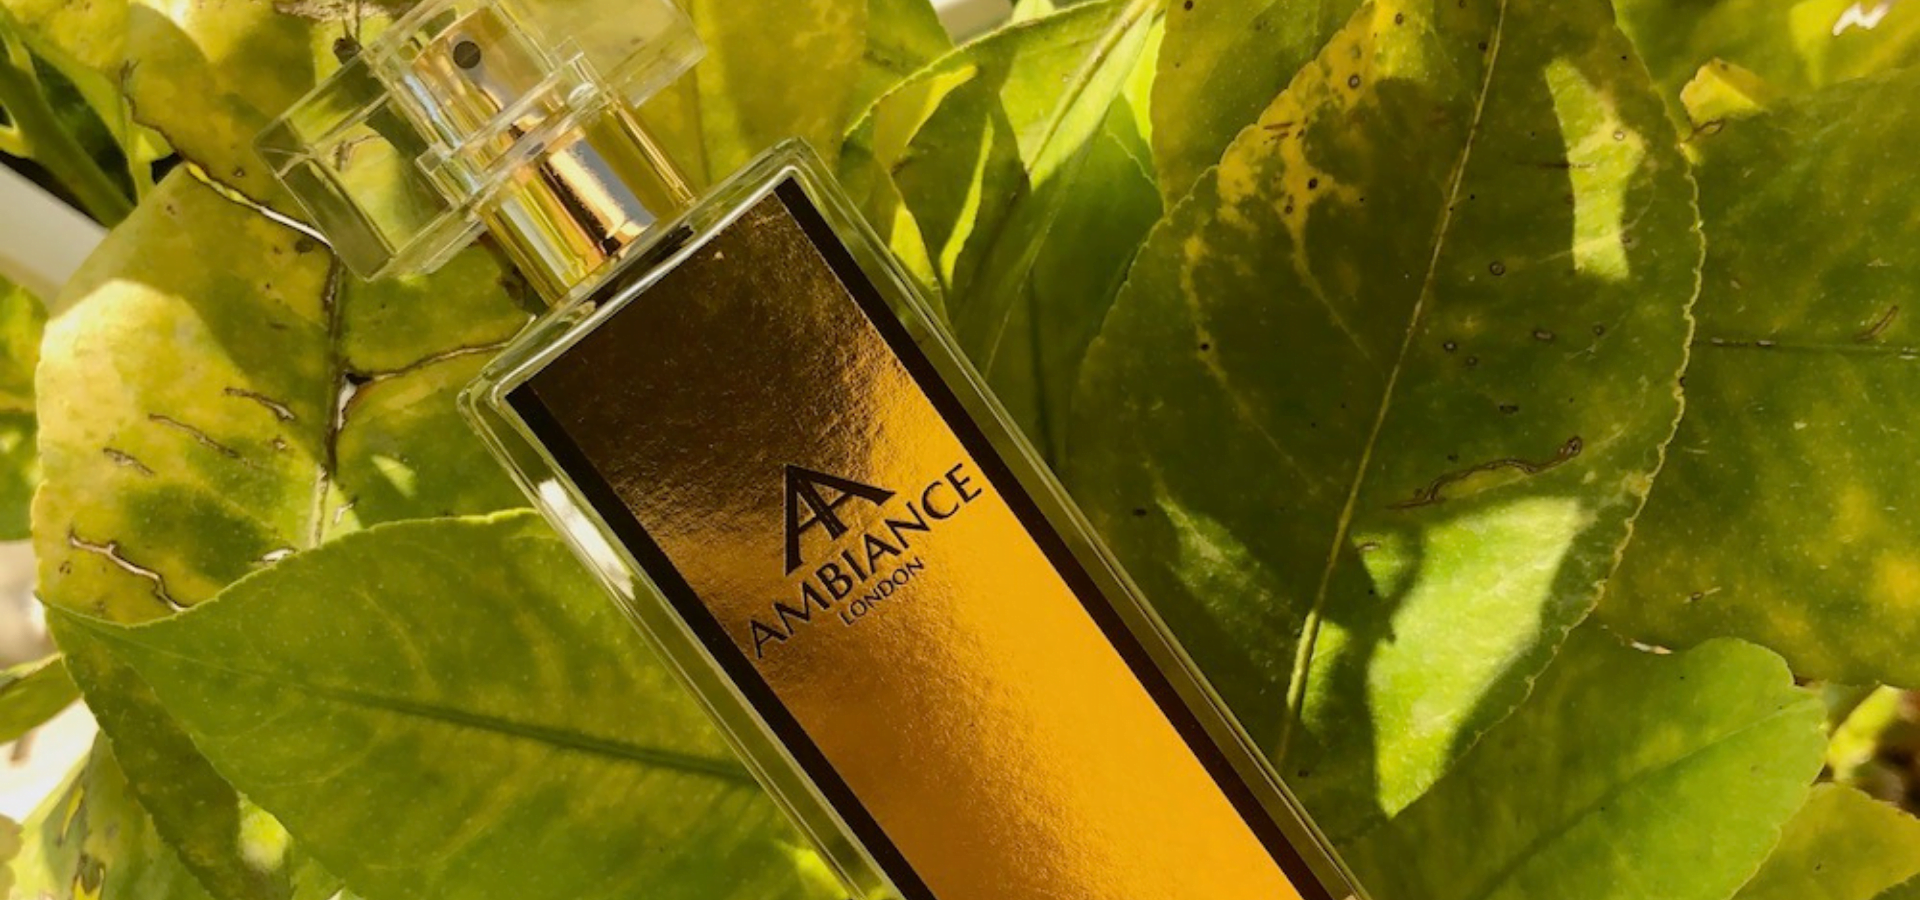 Ancienne Ambiance Colonia Collection Niche Perfumes - stand out from the rest